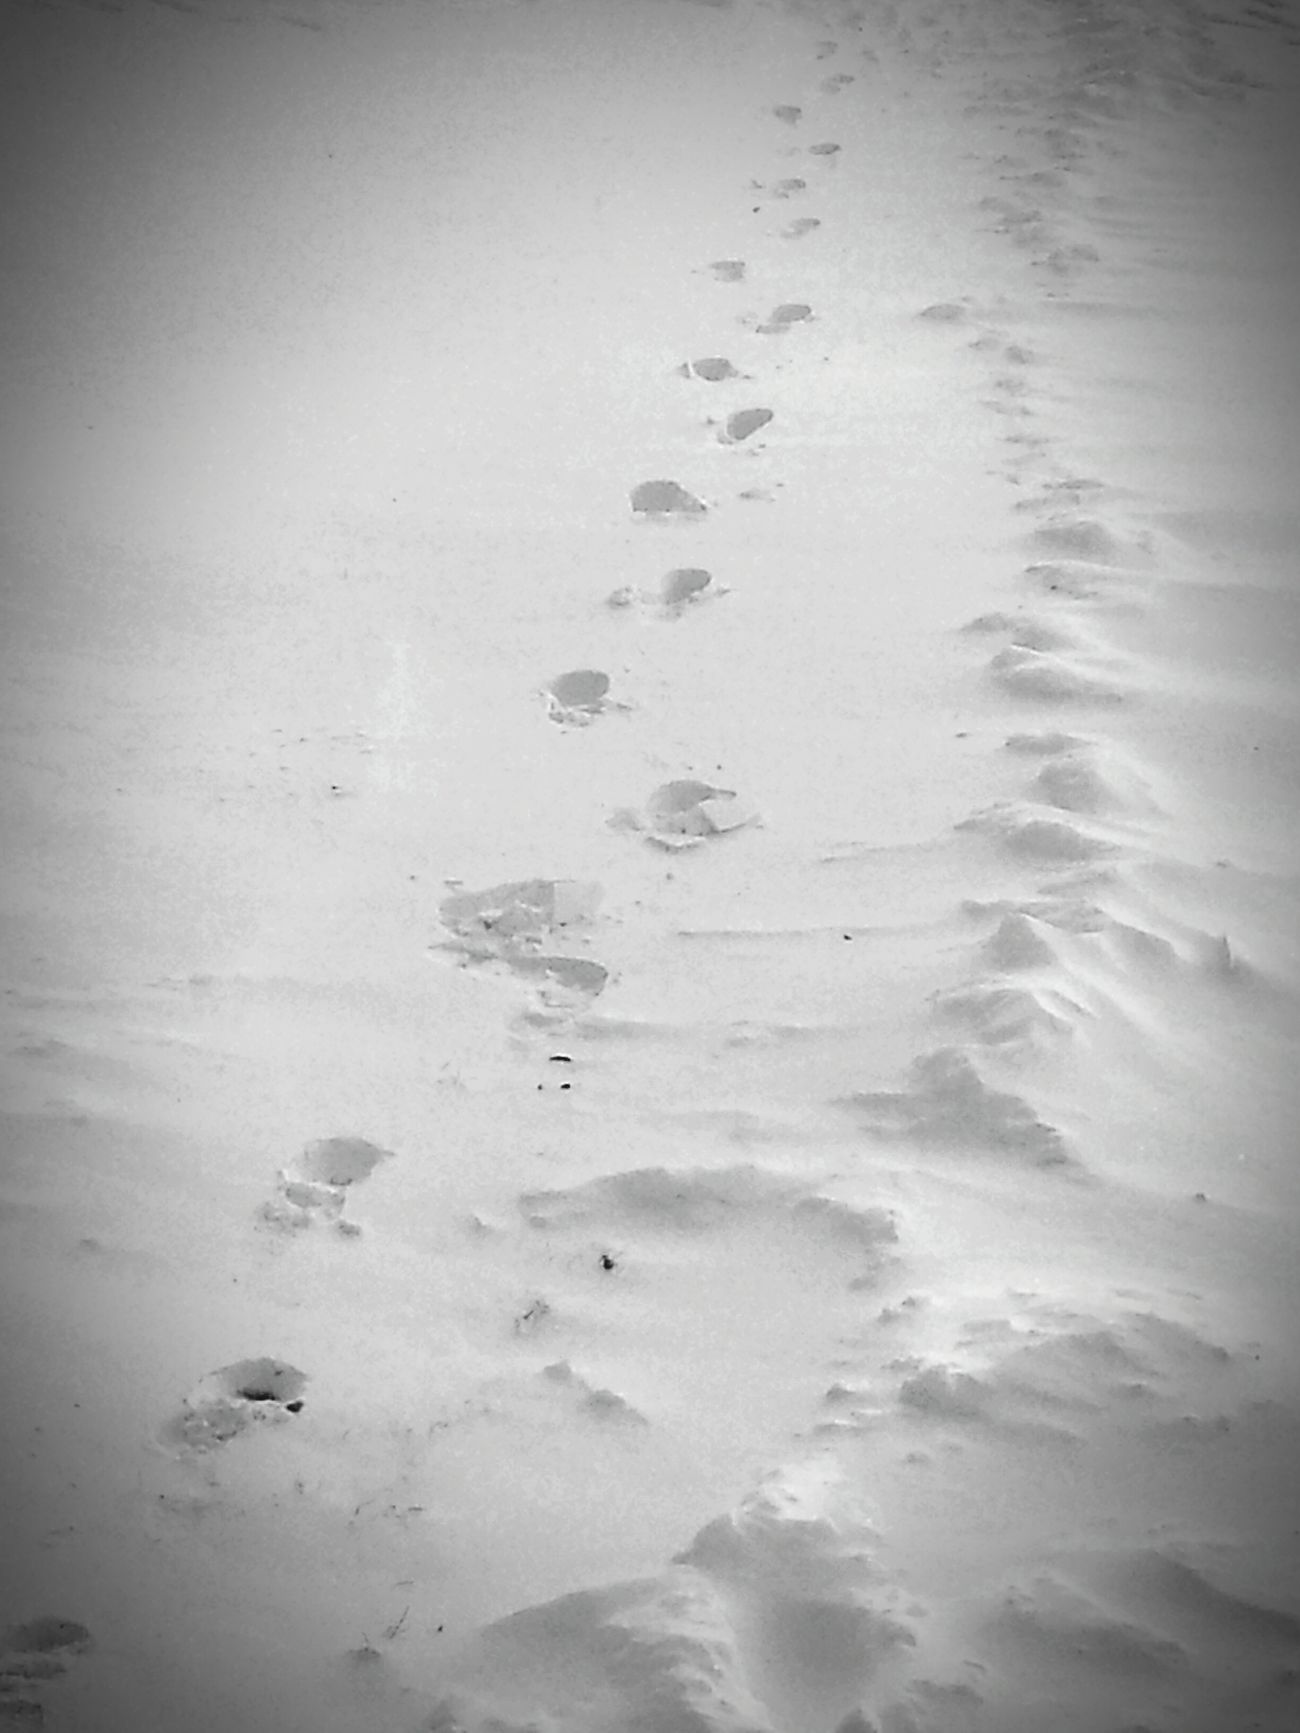 FootPrintsInTheSnow Taking Photos Enjoying Life Today's Hot Look My Photography North Dakota NorthDakotaLiving ❄⛄ NorthDakotaWinter WinterOf2015 Black&white